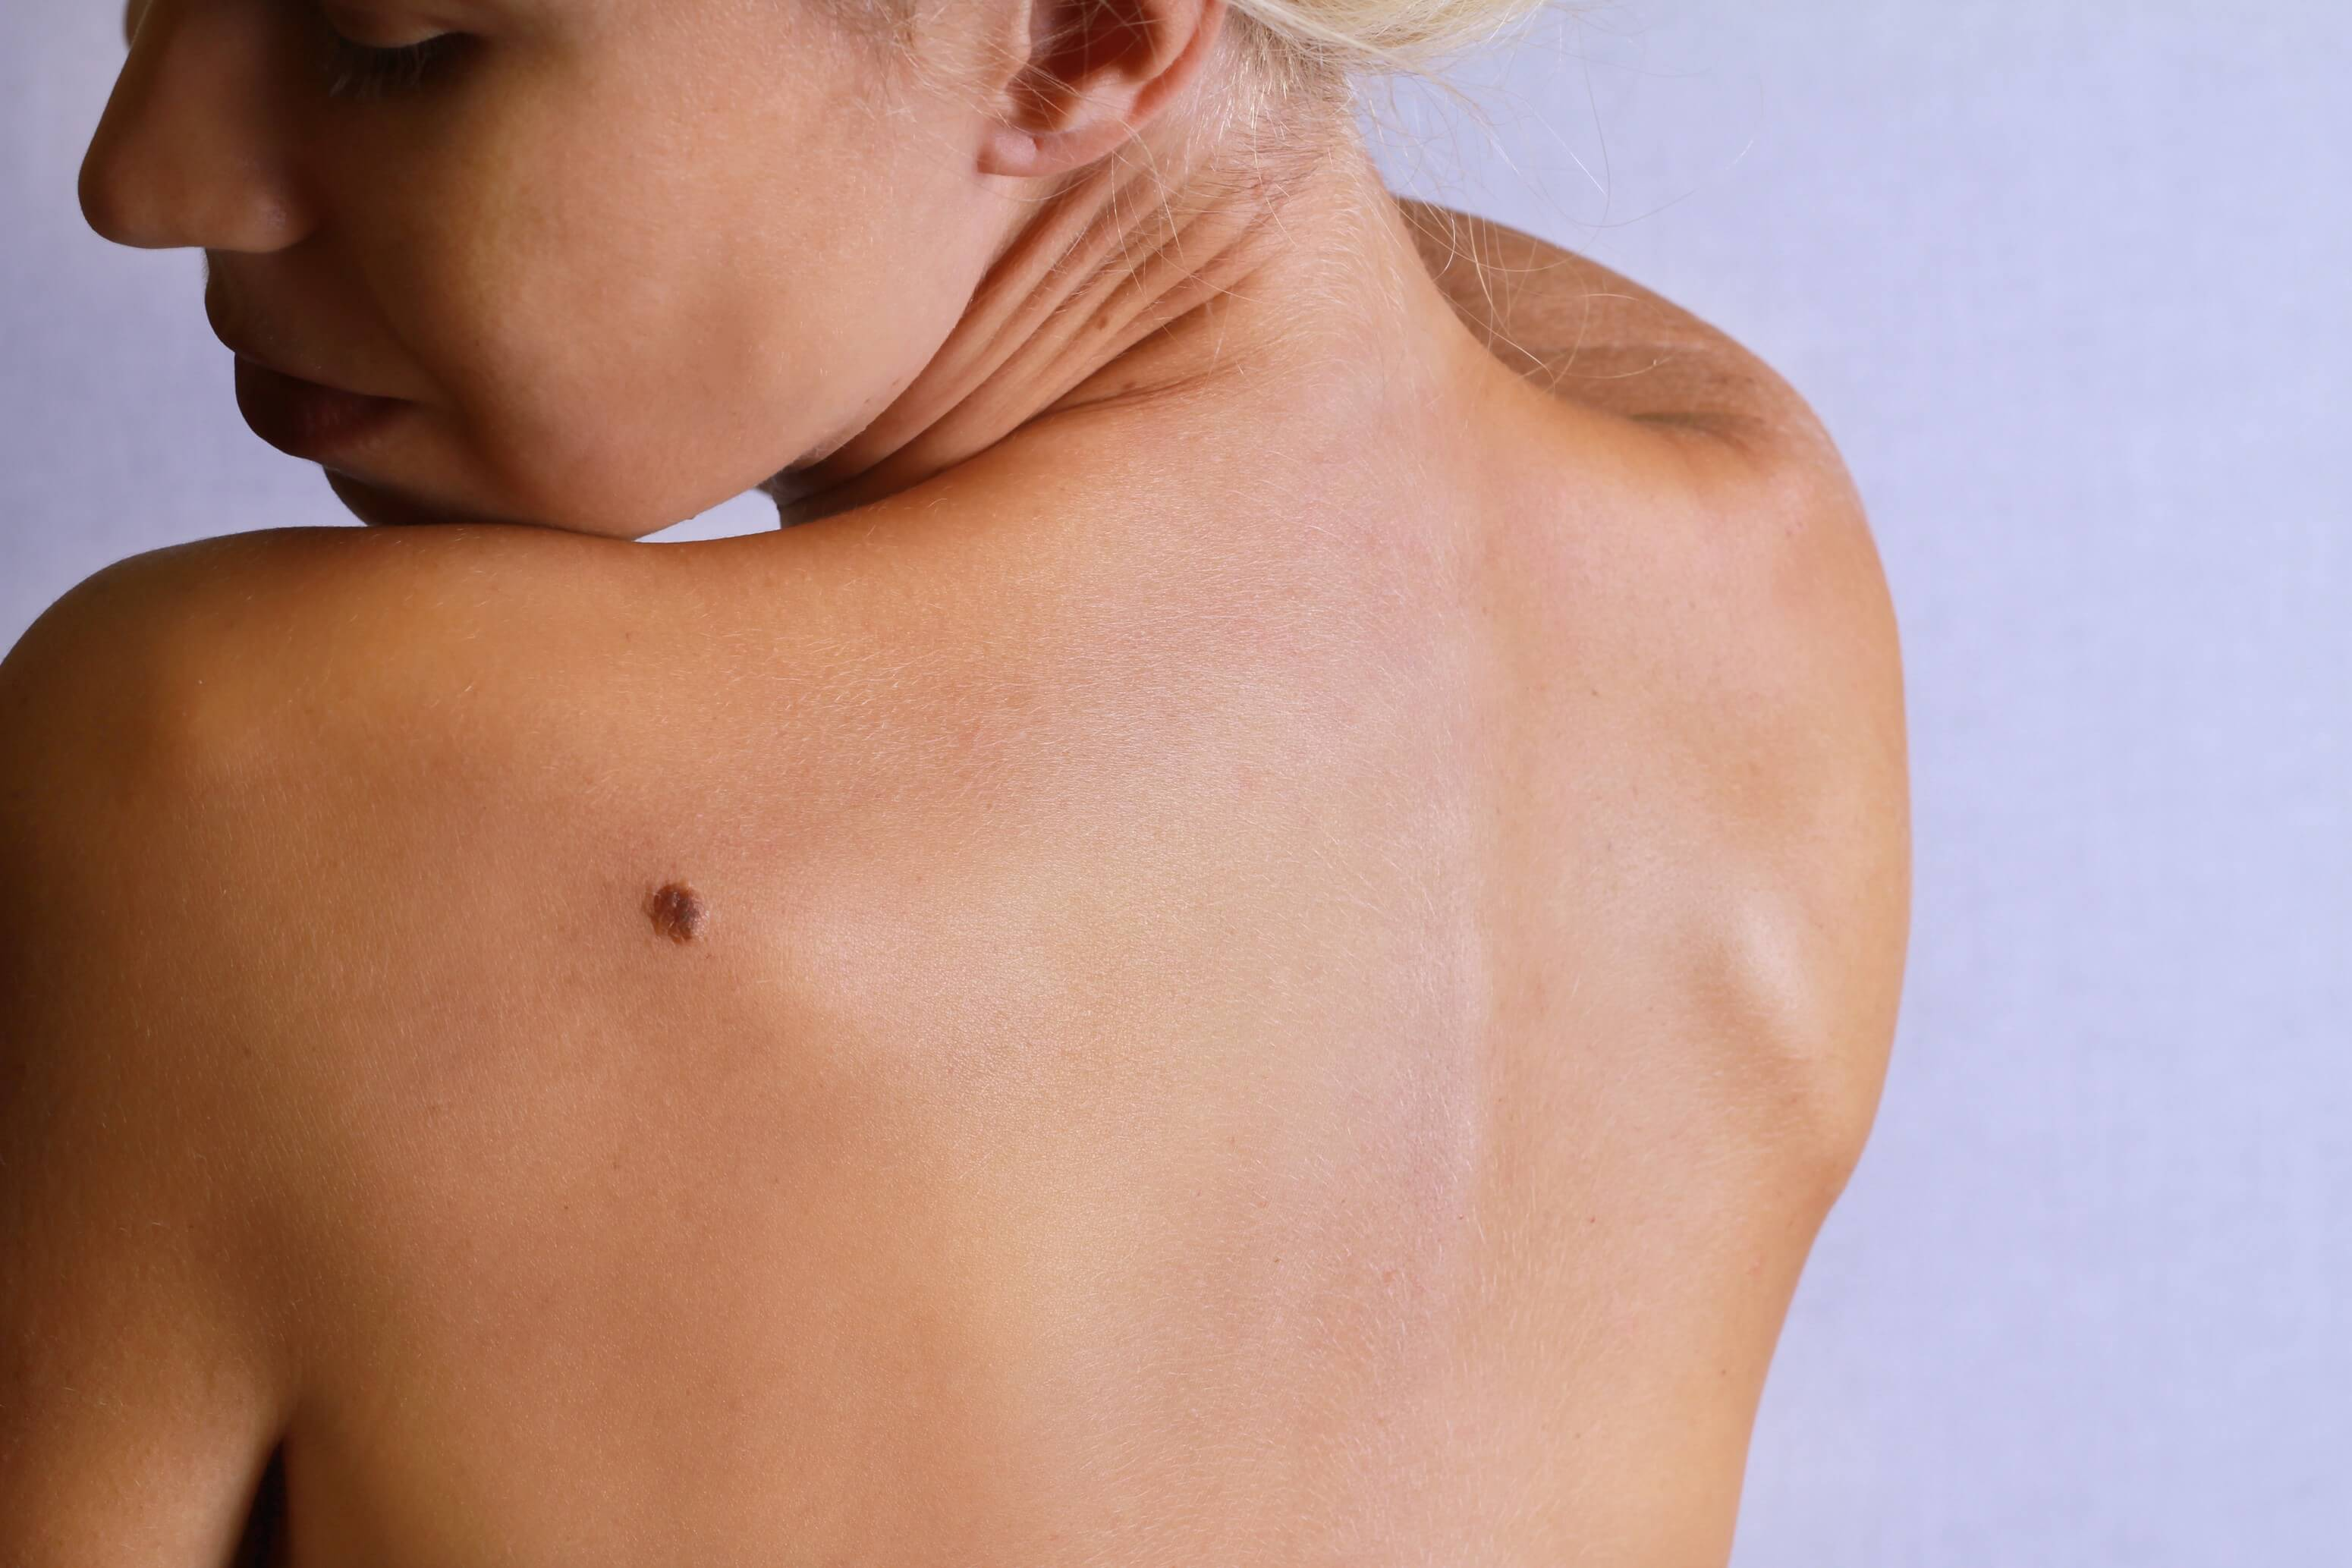 Young woman lookimg at birthmark on her back, skin. Checking benign moles